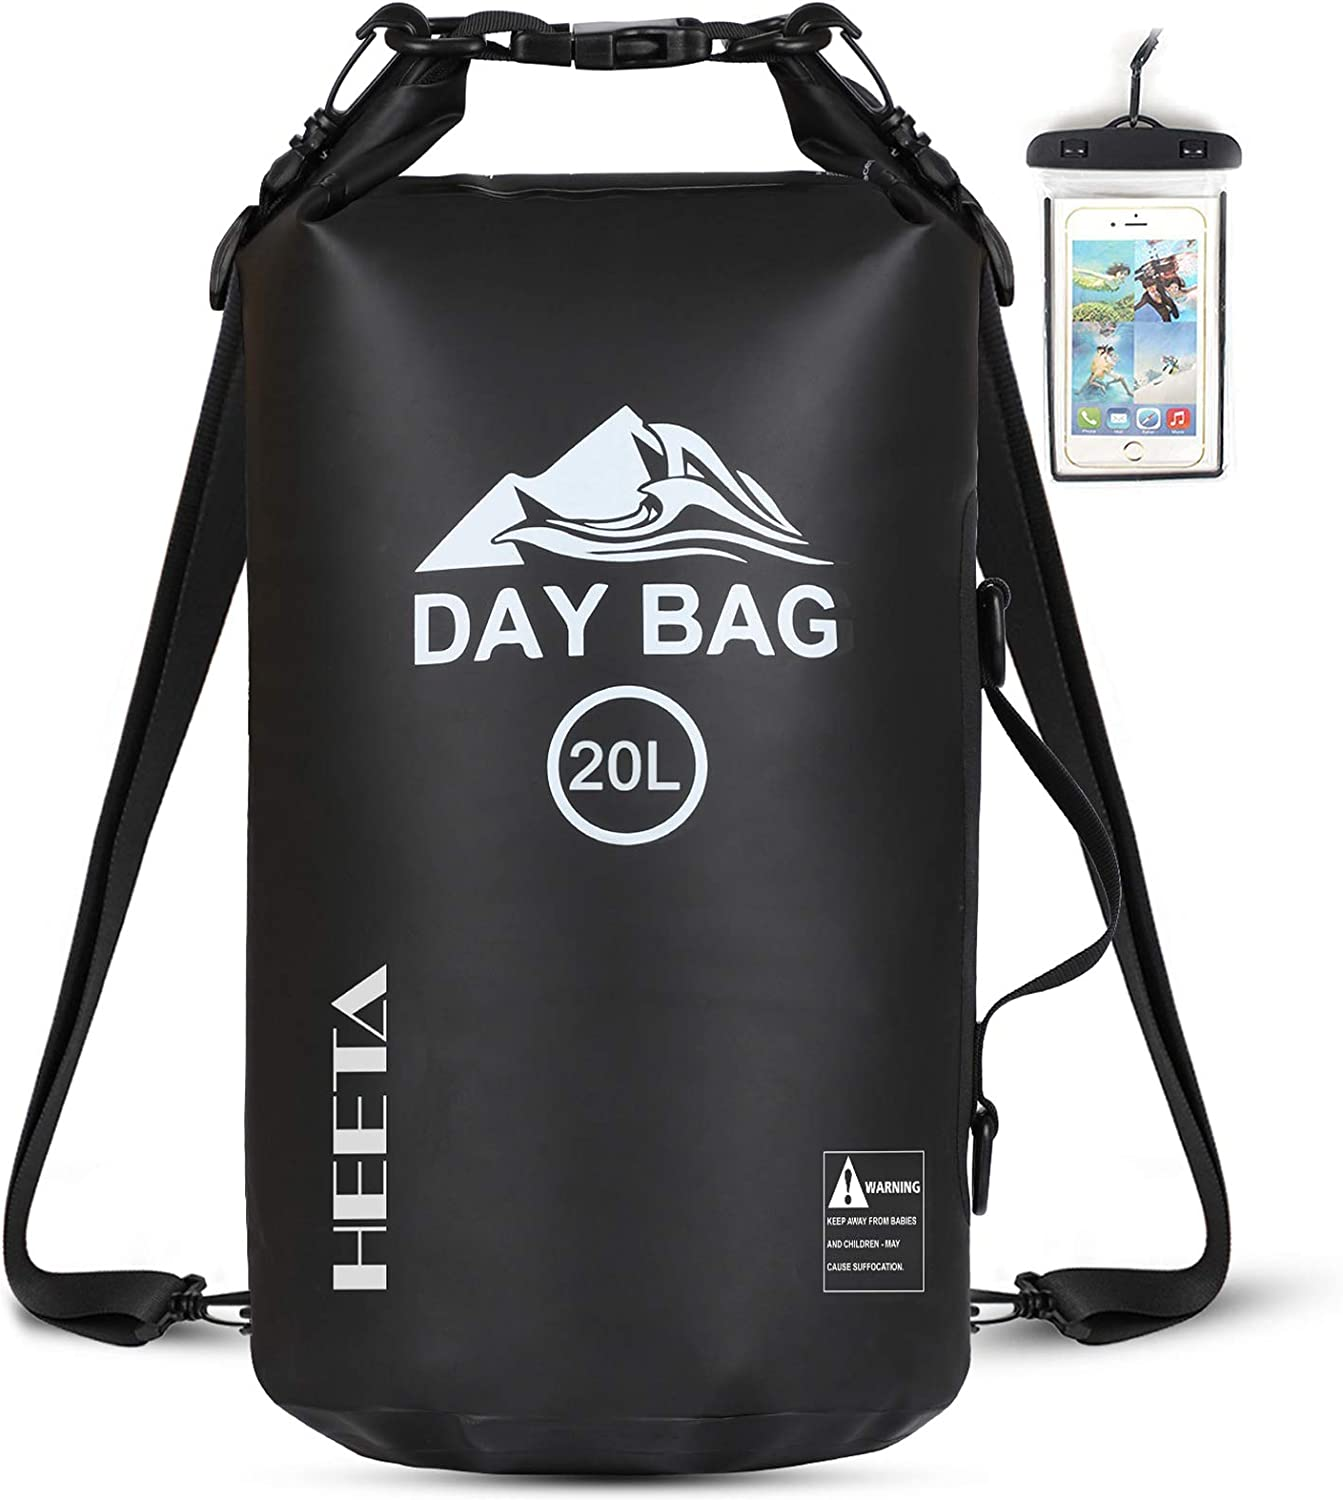 HEETA Waterproof Dry Bag for Women Men, Roll Top Lightweight Dry Storage Bag Backpack with Phone Case for Travel, Swimming, Boating, Kayaking, Camping and Beach (Black 20L)